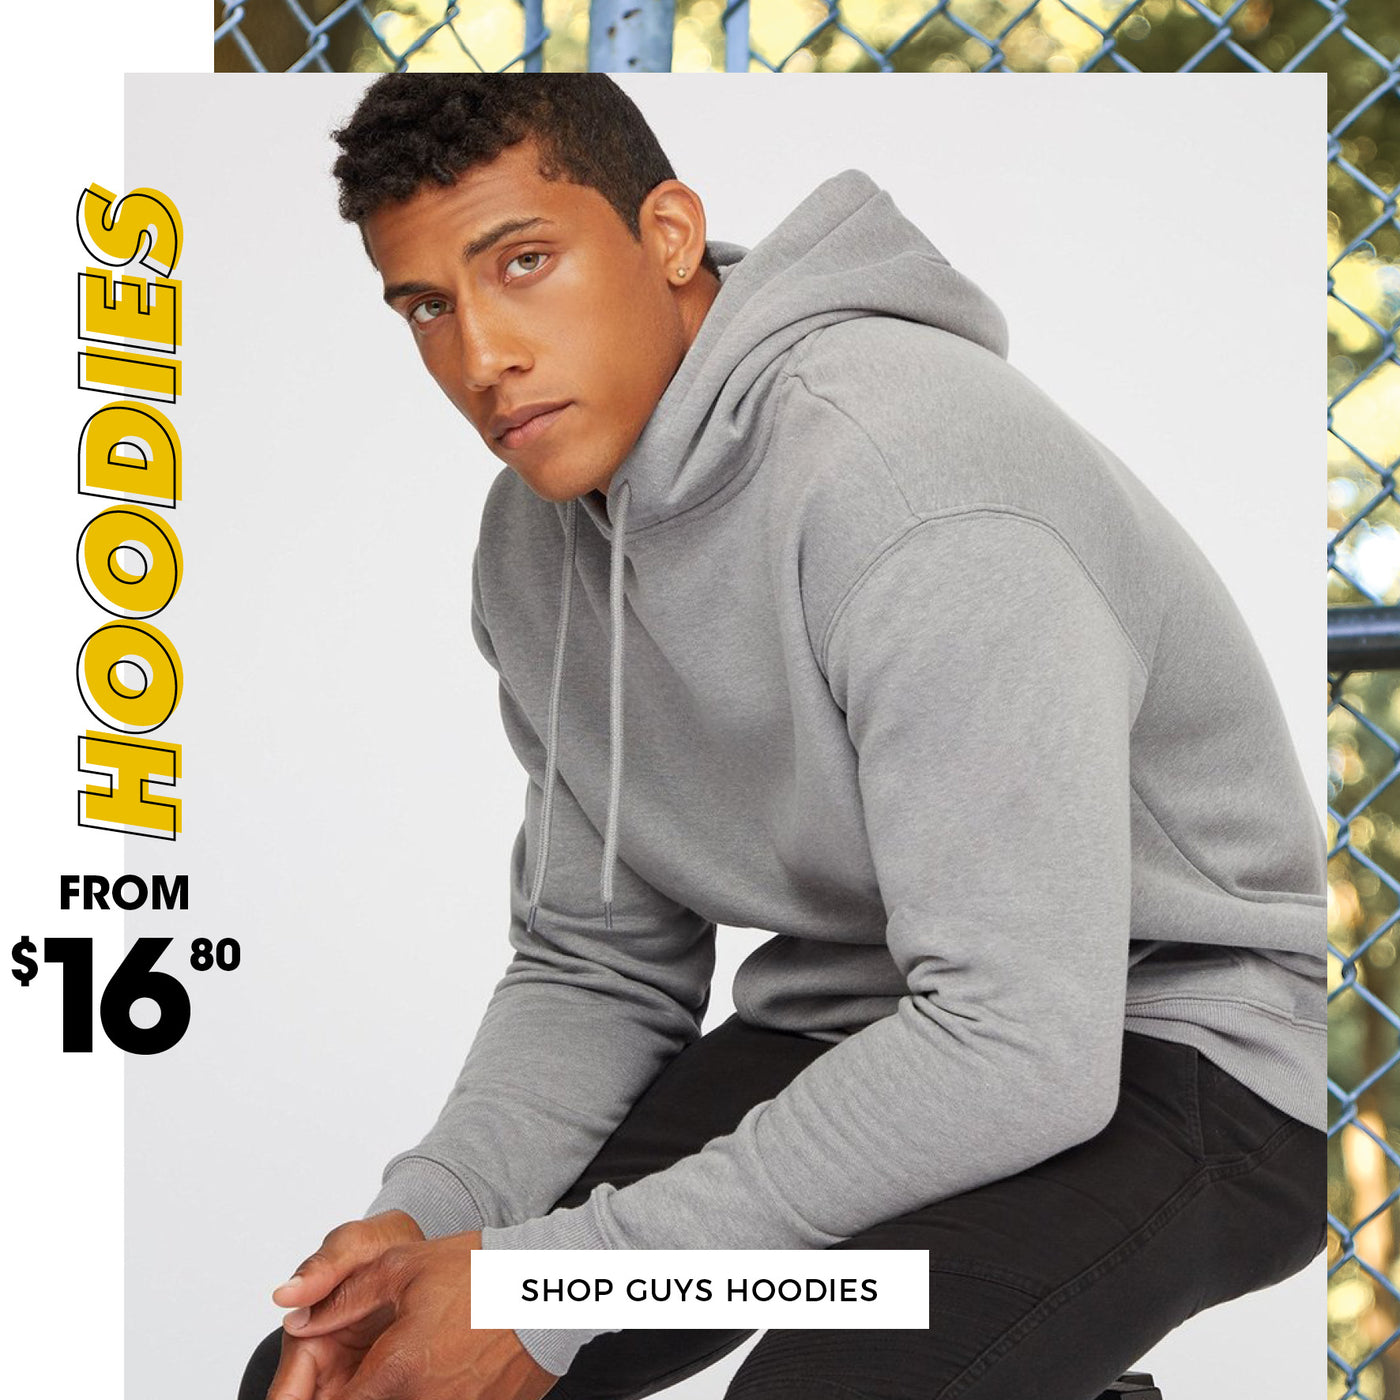 Hoodies from $16.80 - Shop Guys Hoodies